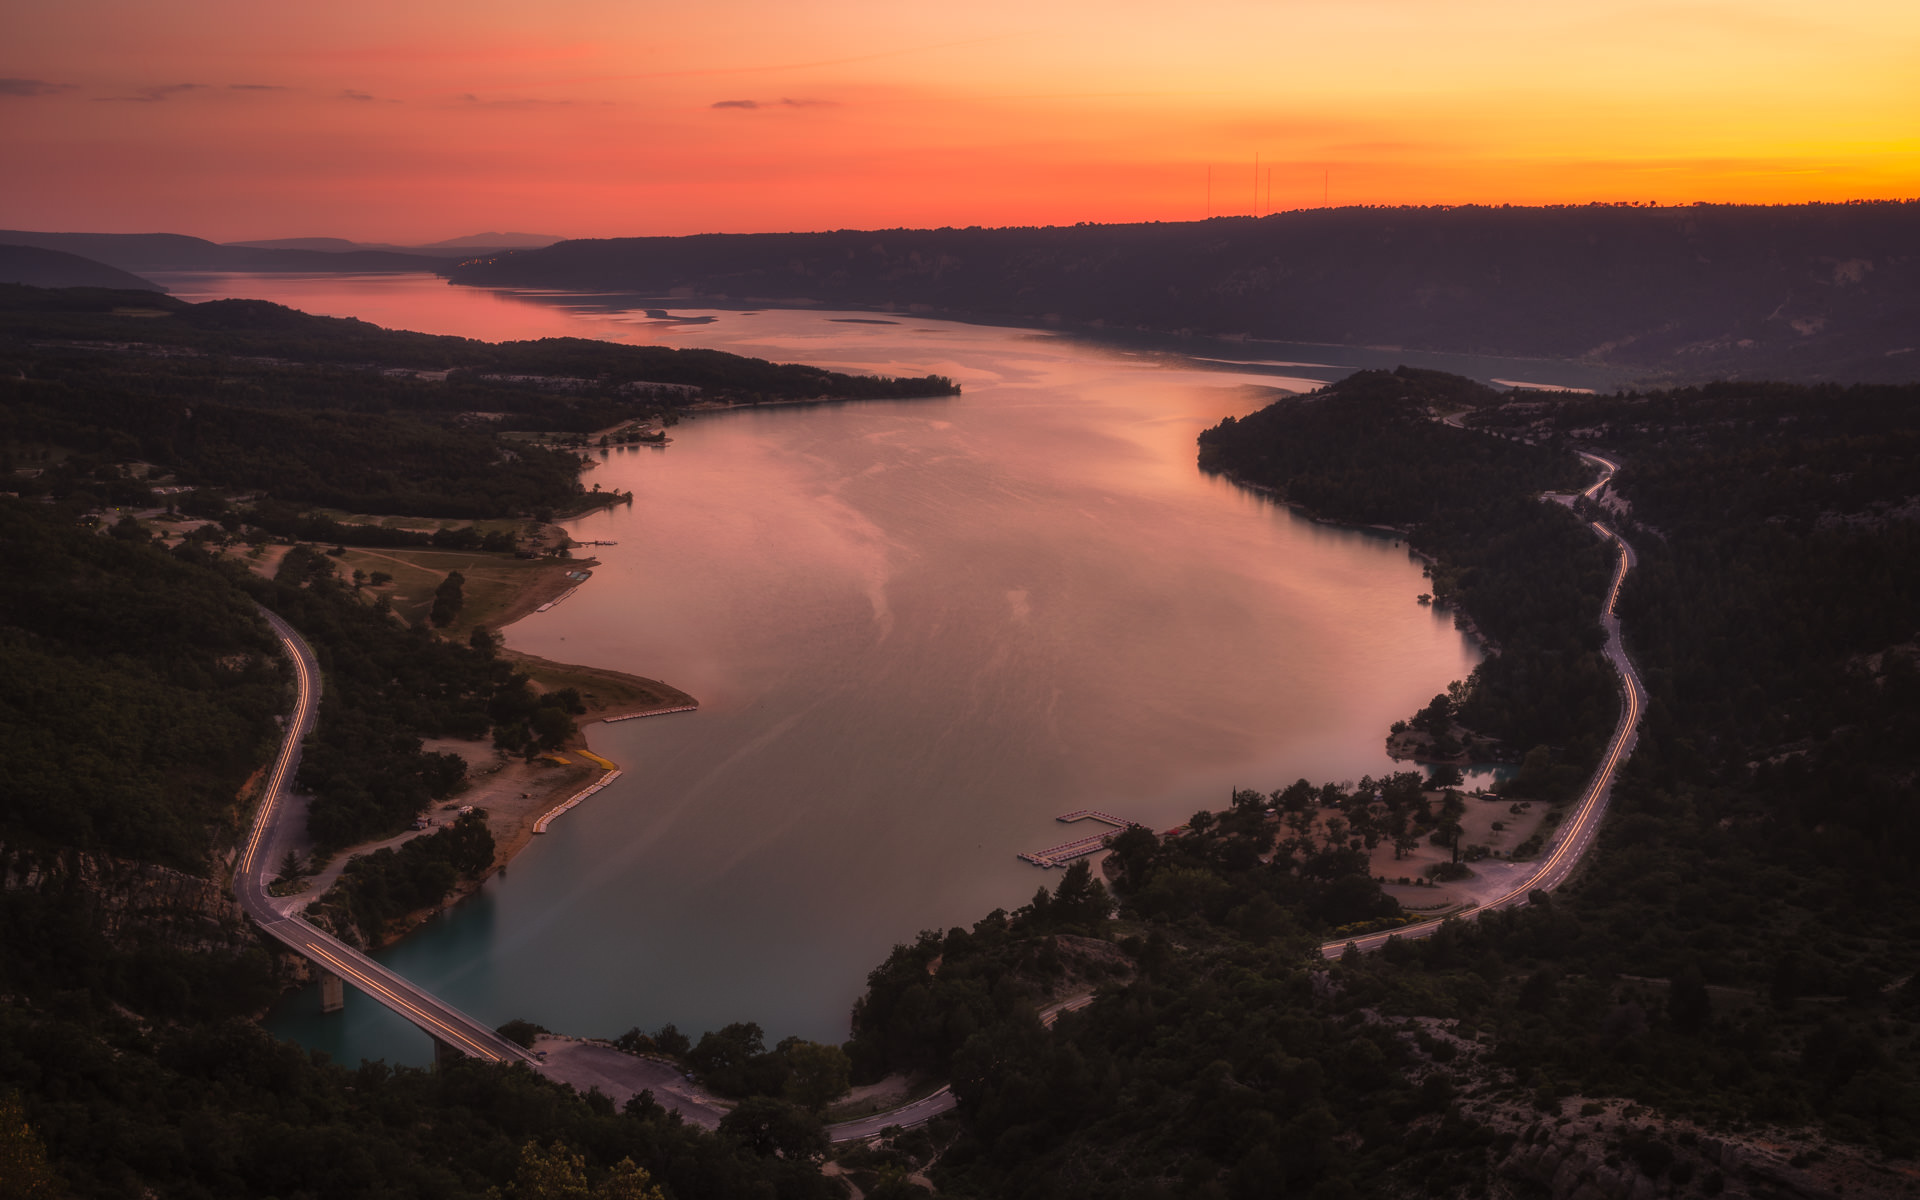 Orange Sunrise at Lac de Sainte-Croix from Verdon Canyon